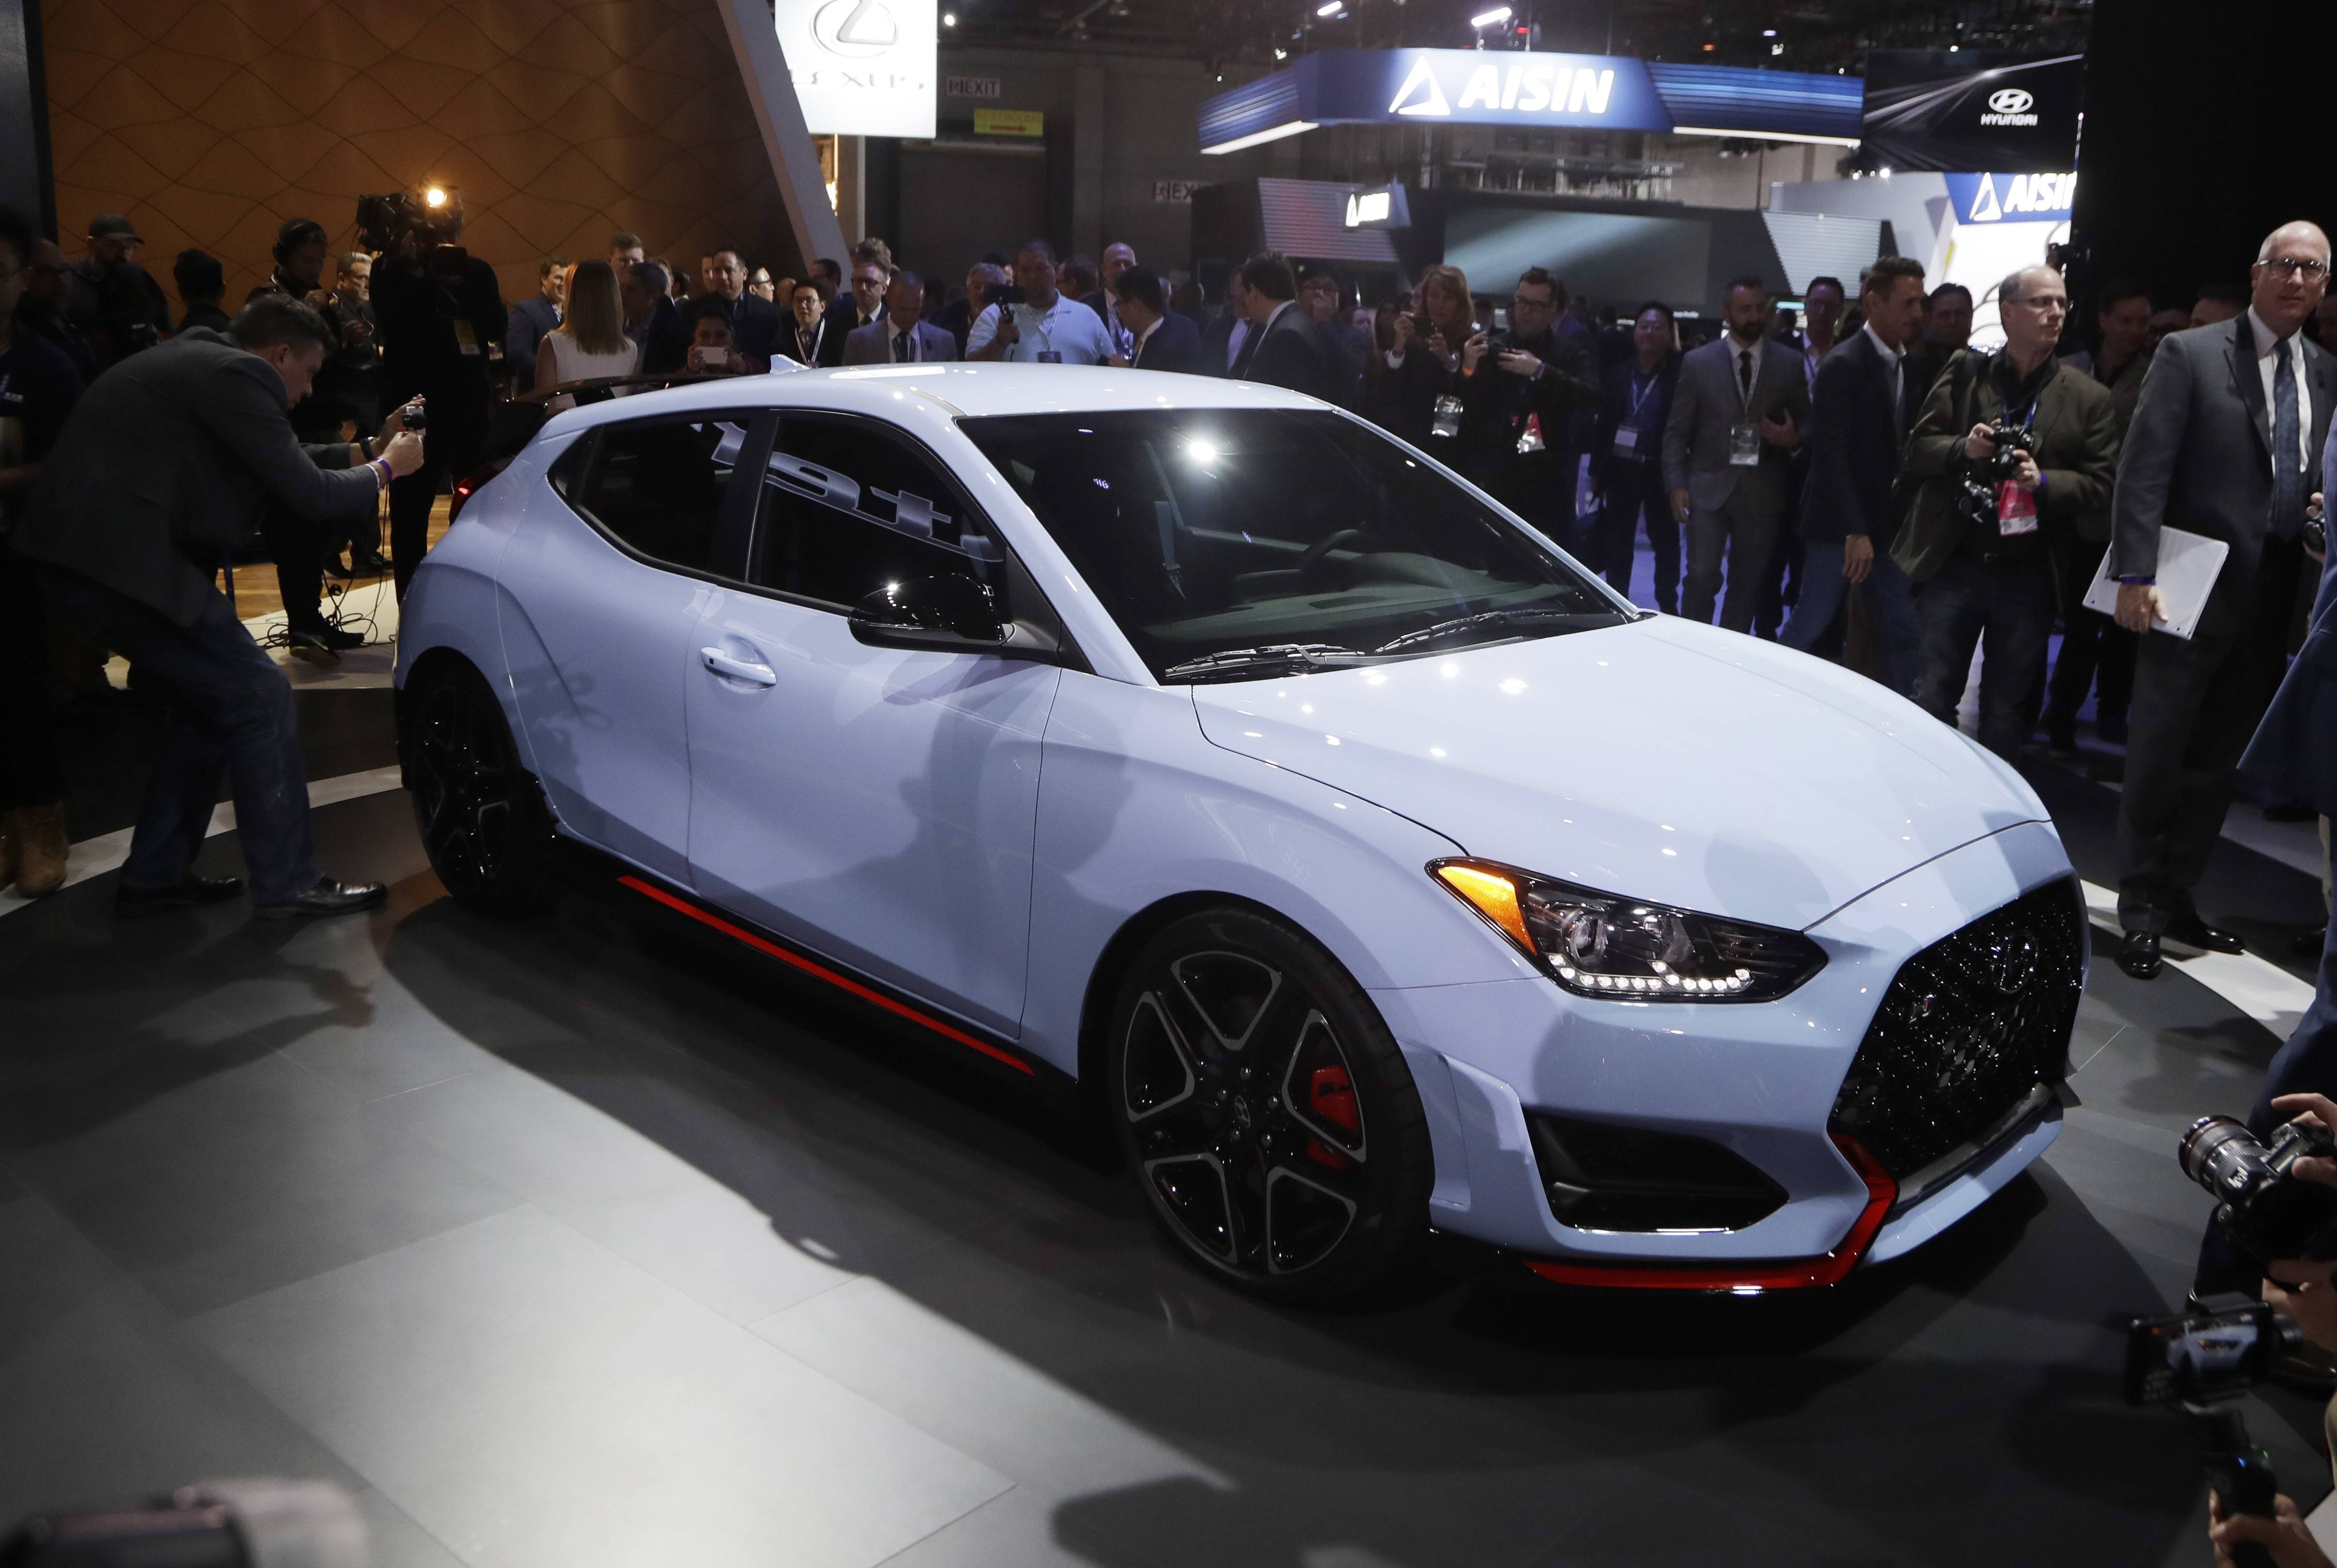 Journalists look over the 2019 Veloster N model during the North American International Auto Show.